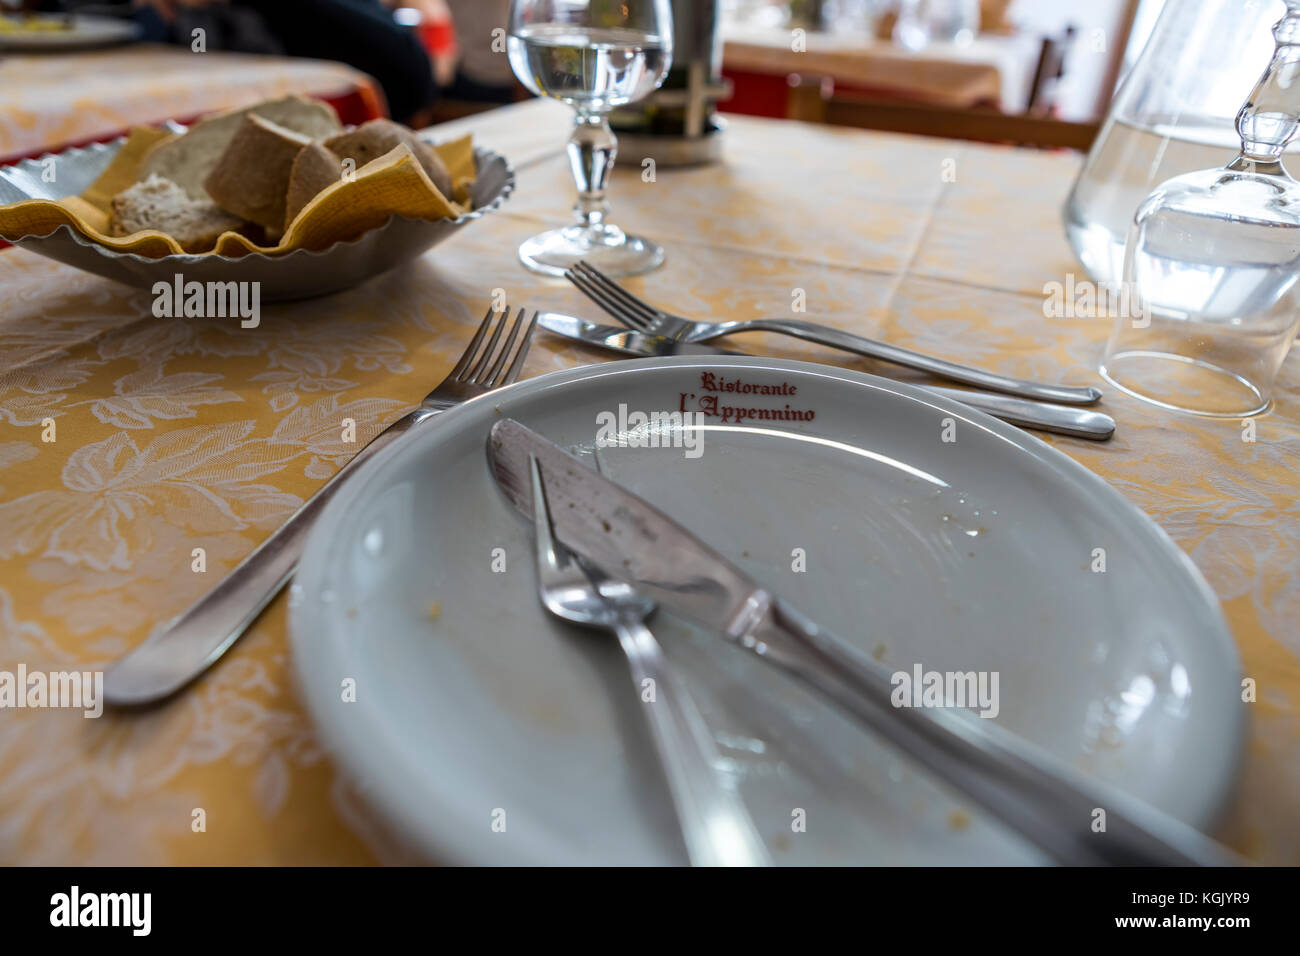 Hotel and restaurant L'Appennino, on the summit of the San Pellegrino Pass. Province of Lucca. Italy. Stock Photo